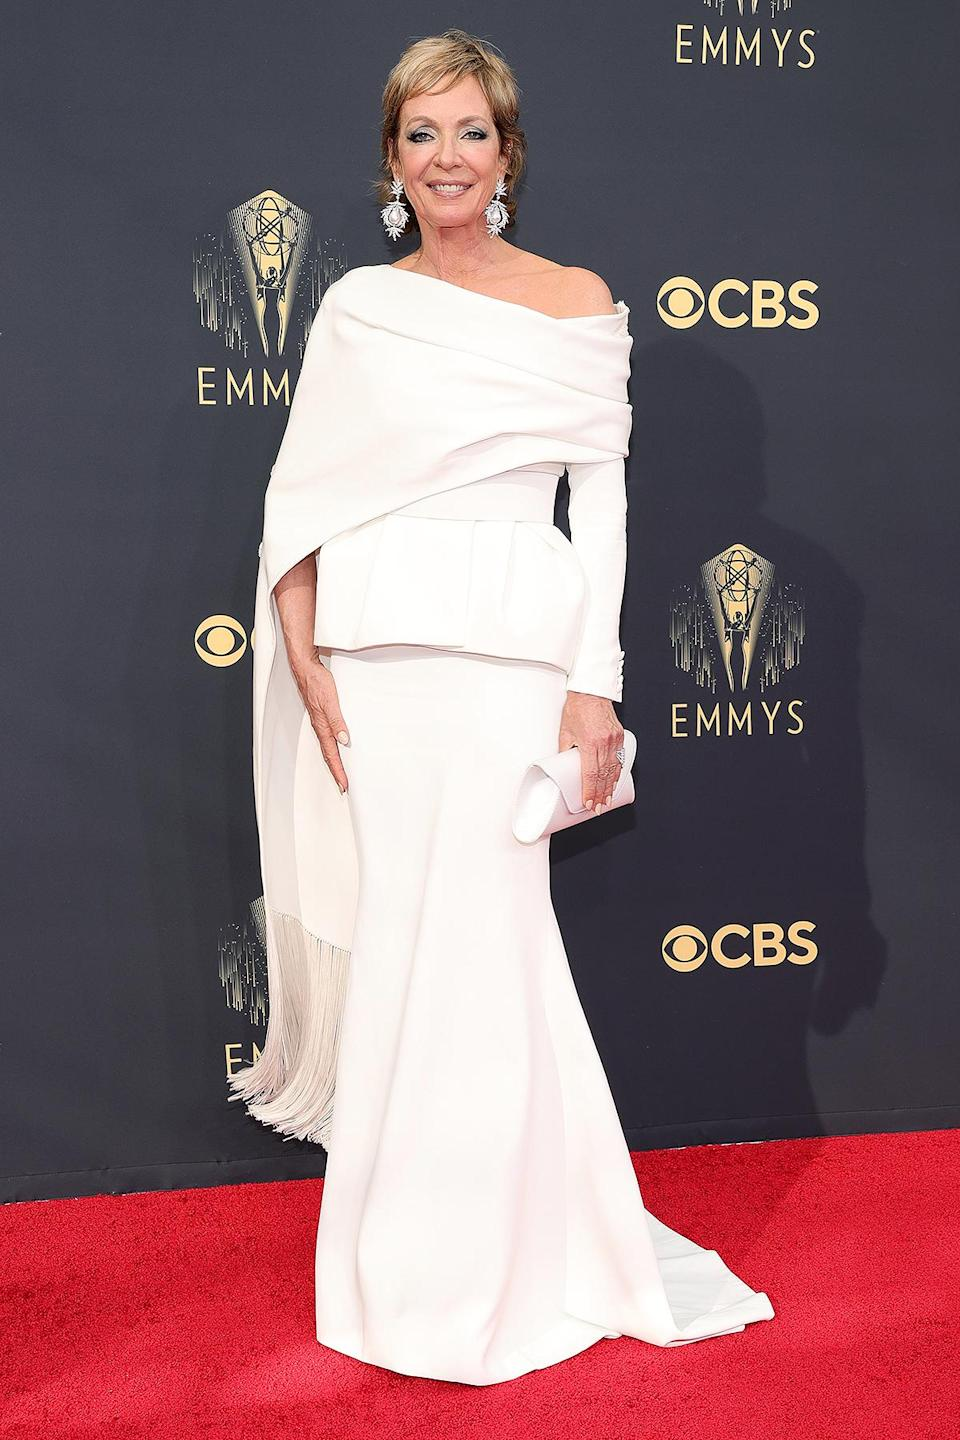 <p>in an Azzi & Osta belted peplum suit jacket, full length skirt and embellished shawl with tassels at the hem, plus statement earrings and white clutch.</p>